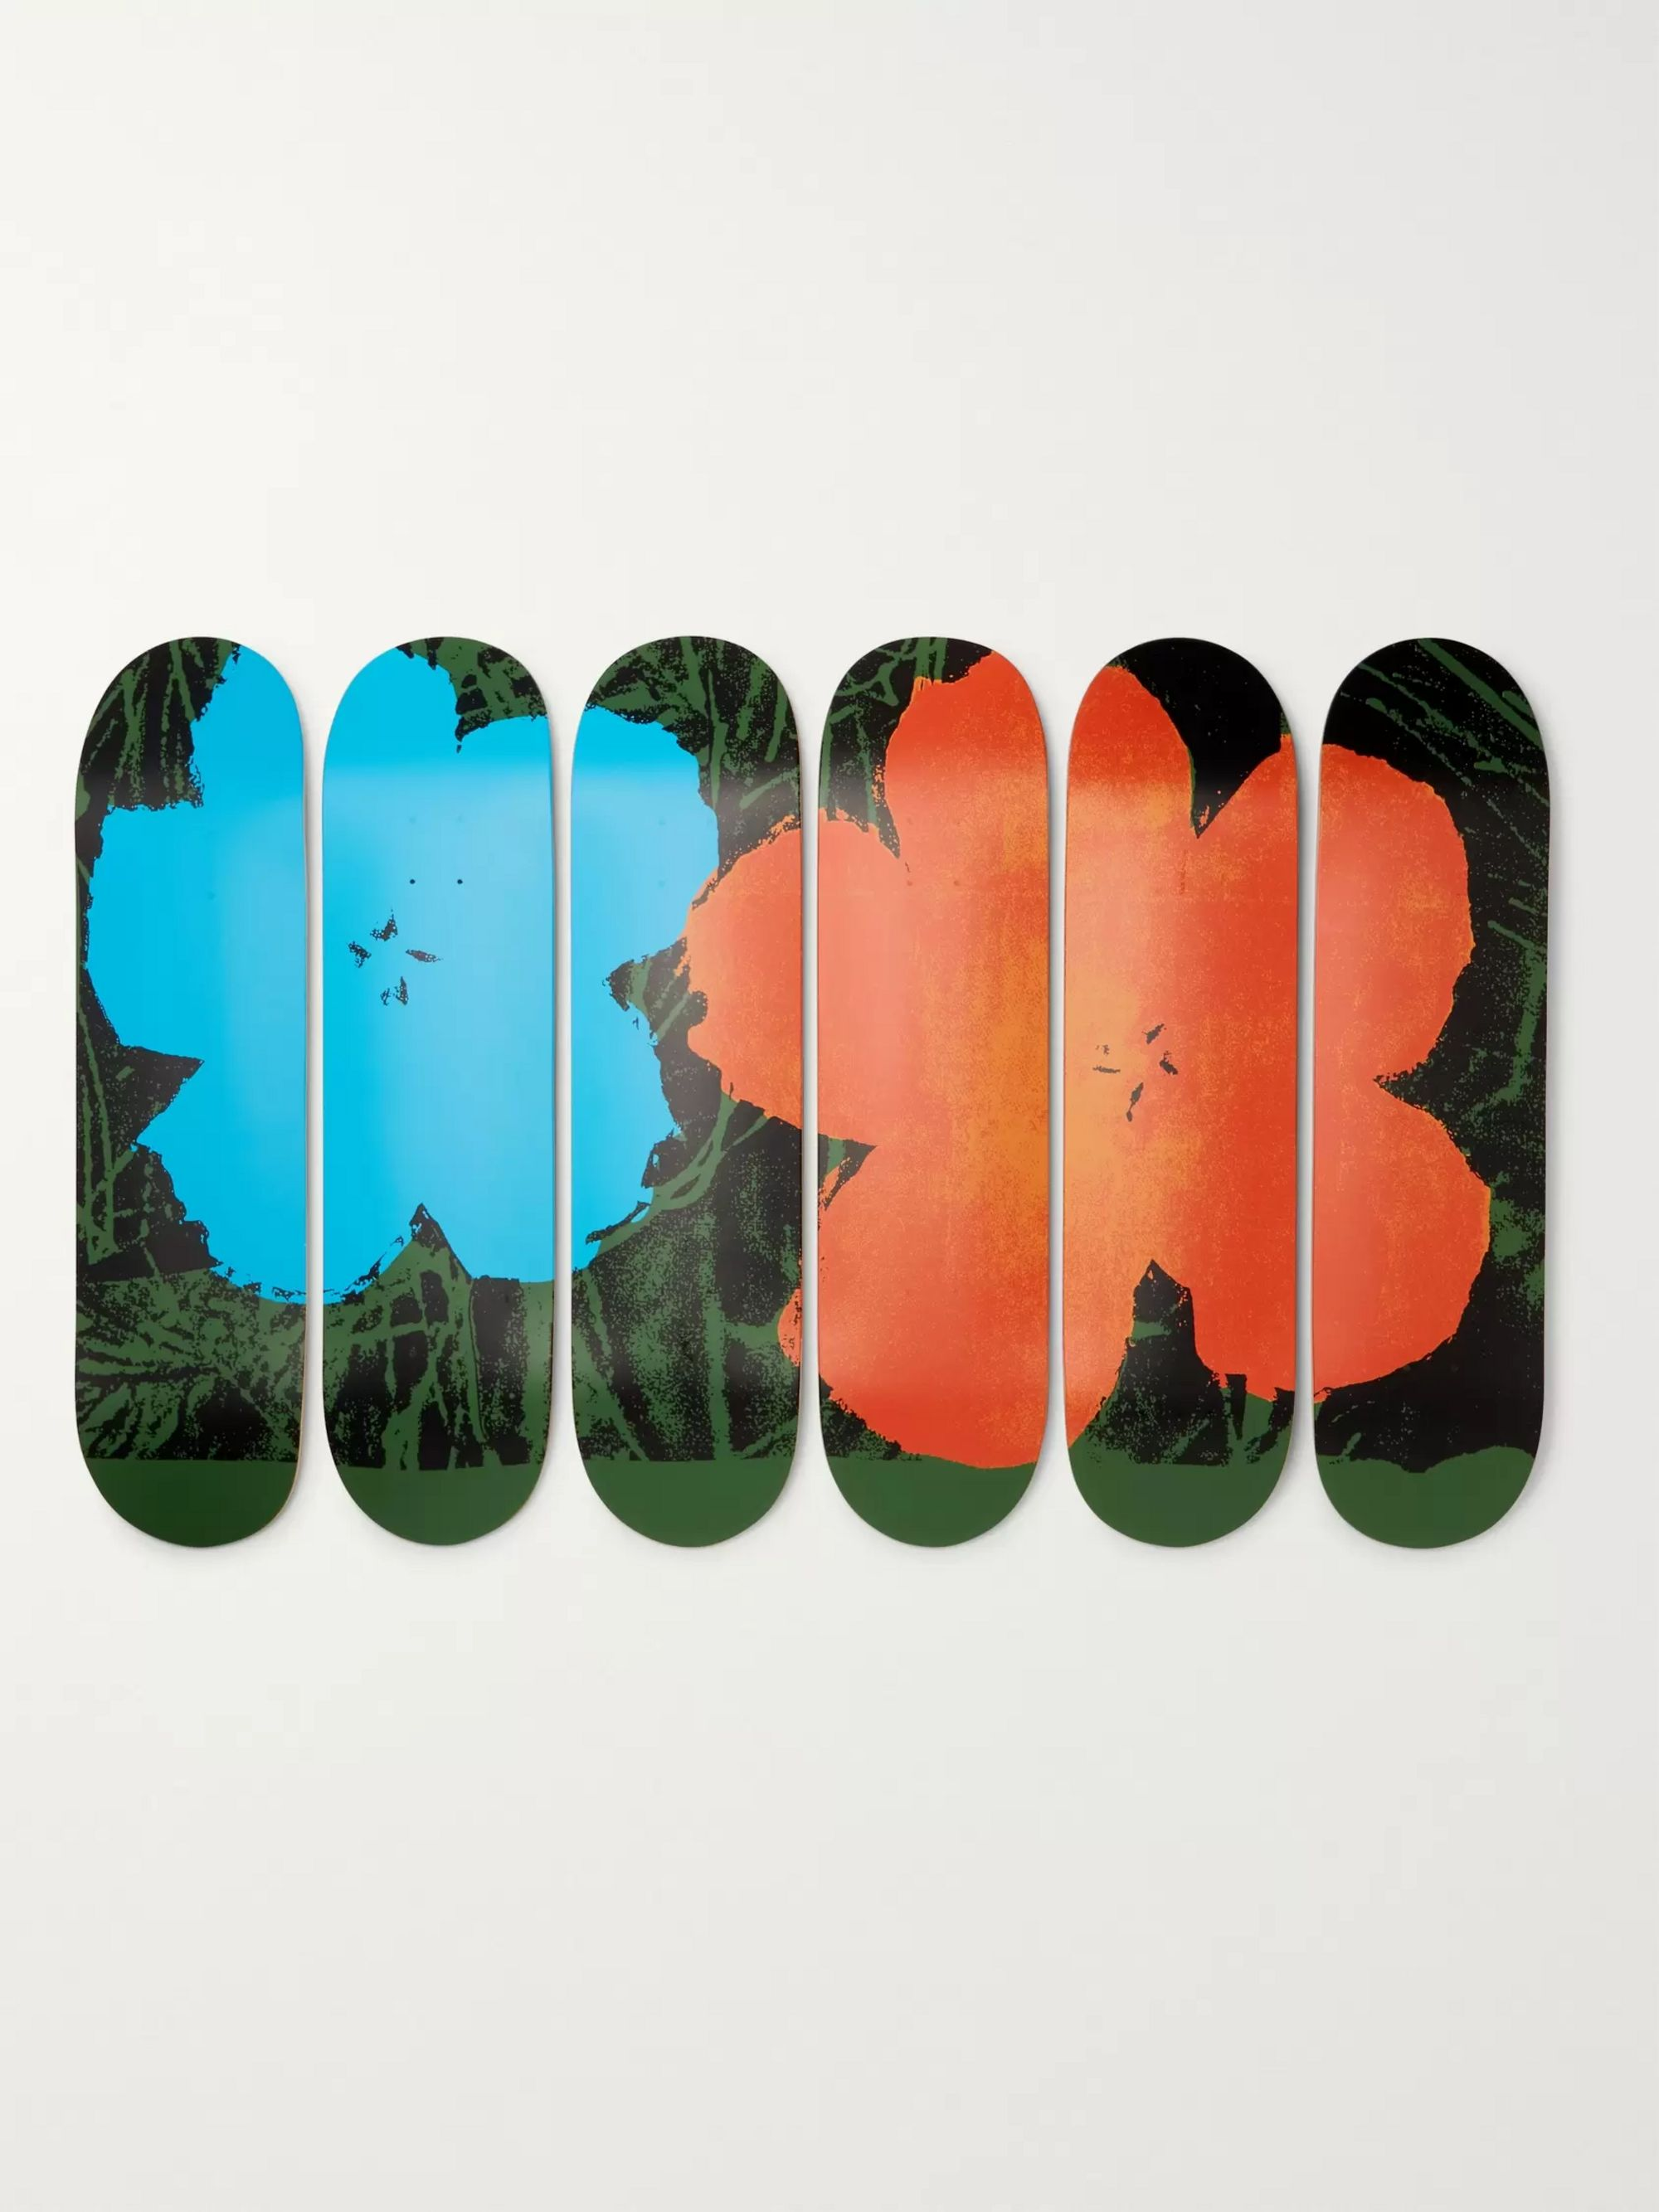 The SkateRoom + Andy Warhol Set of Six Printed Wooden Skateboards